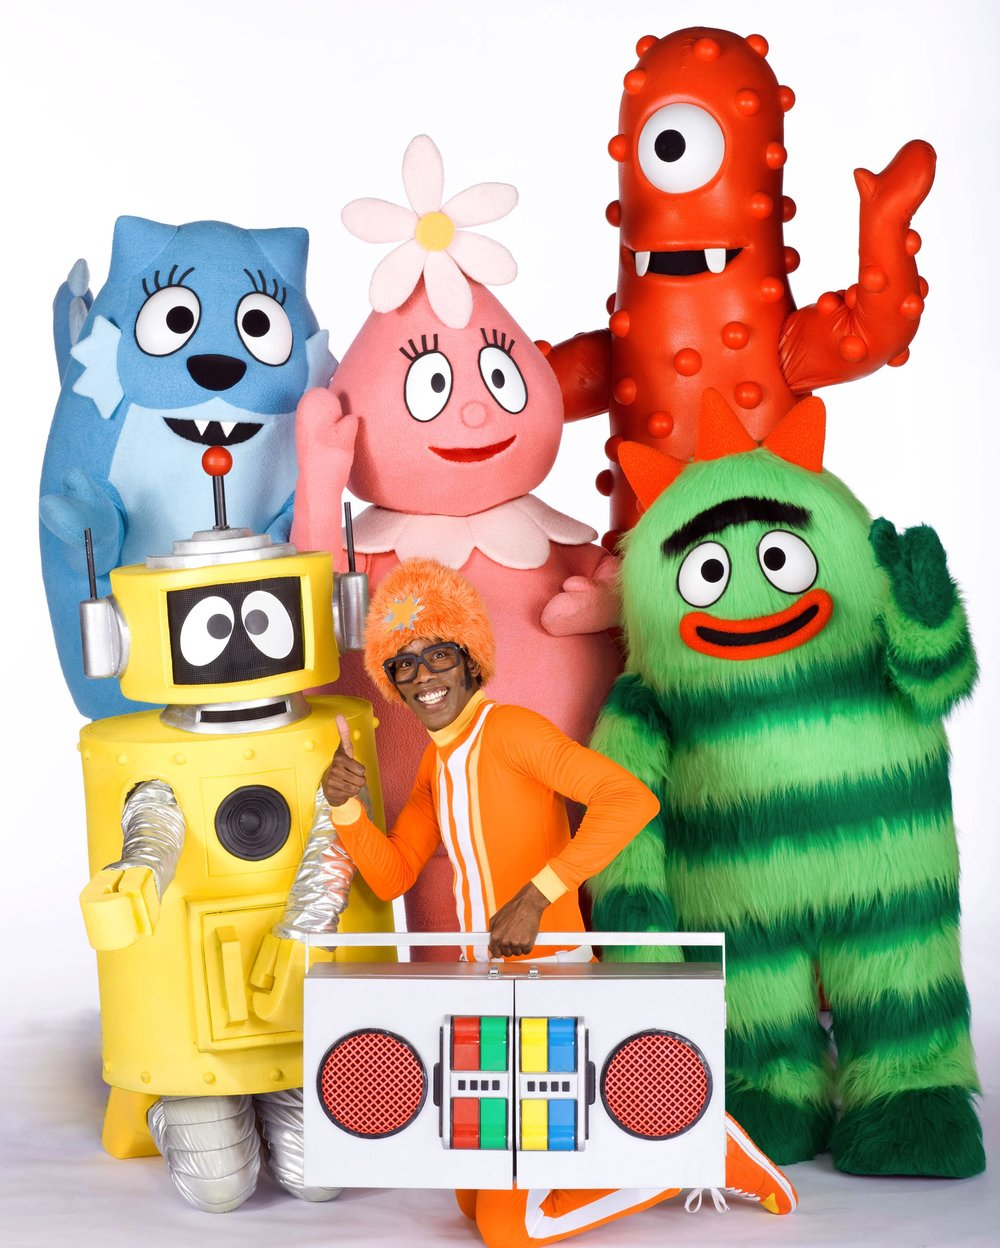 Yo Gabba Gabba! and DJ Lance Rock